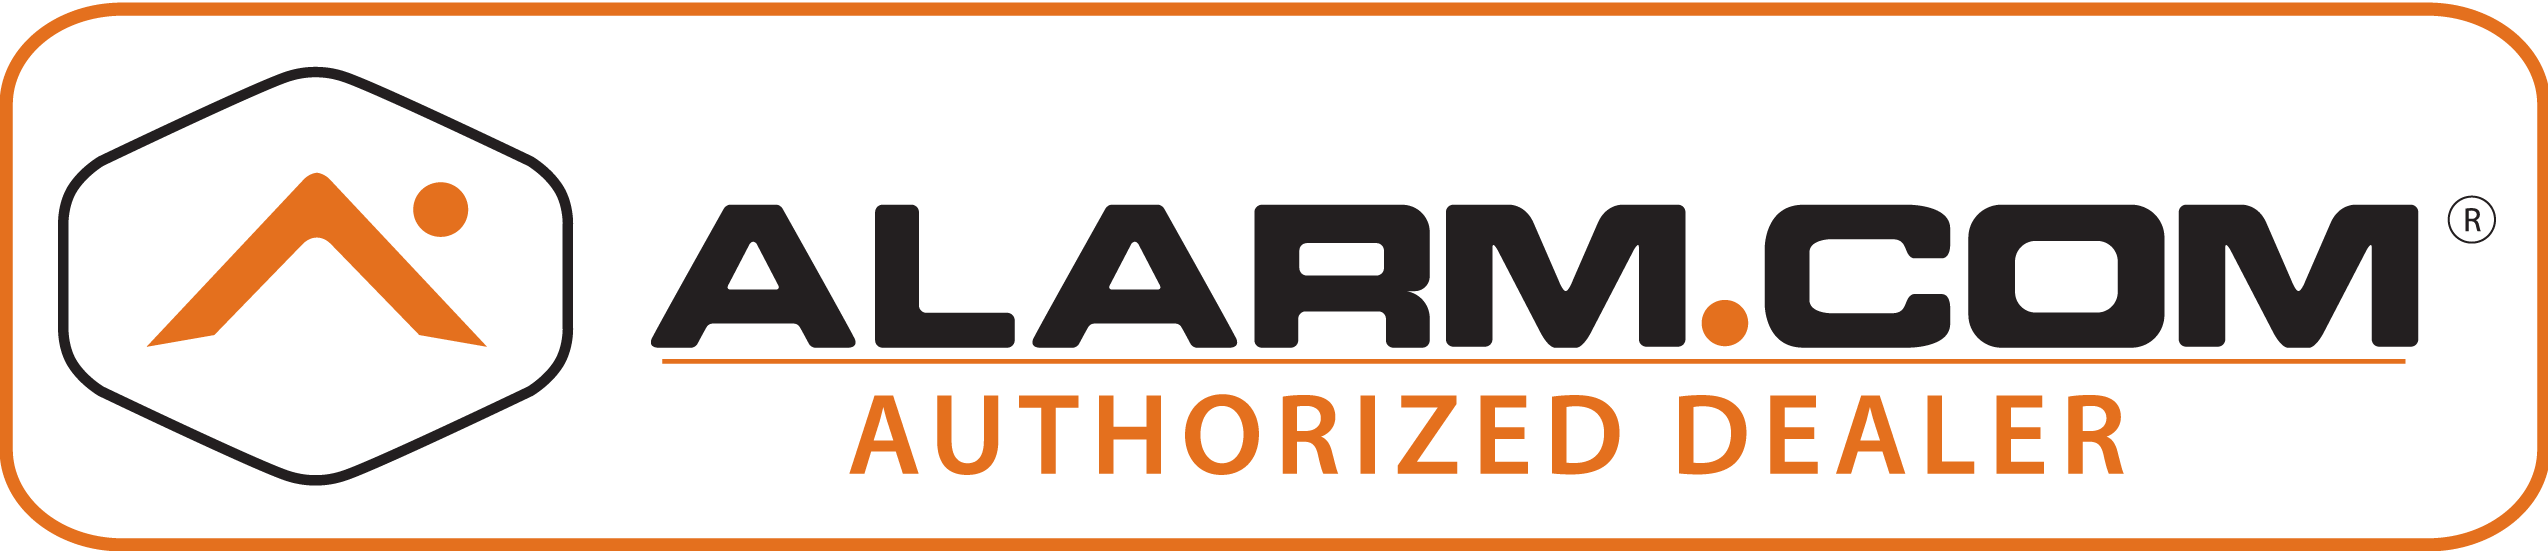 Authorized dealer of Alarm.com